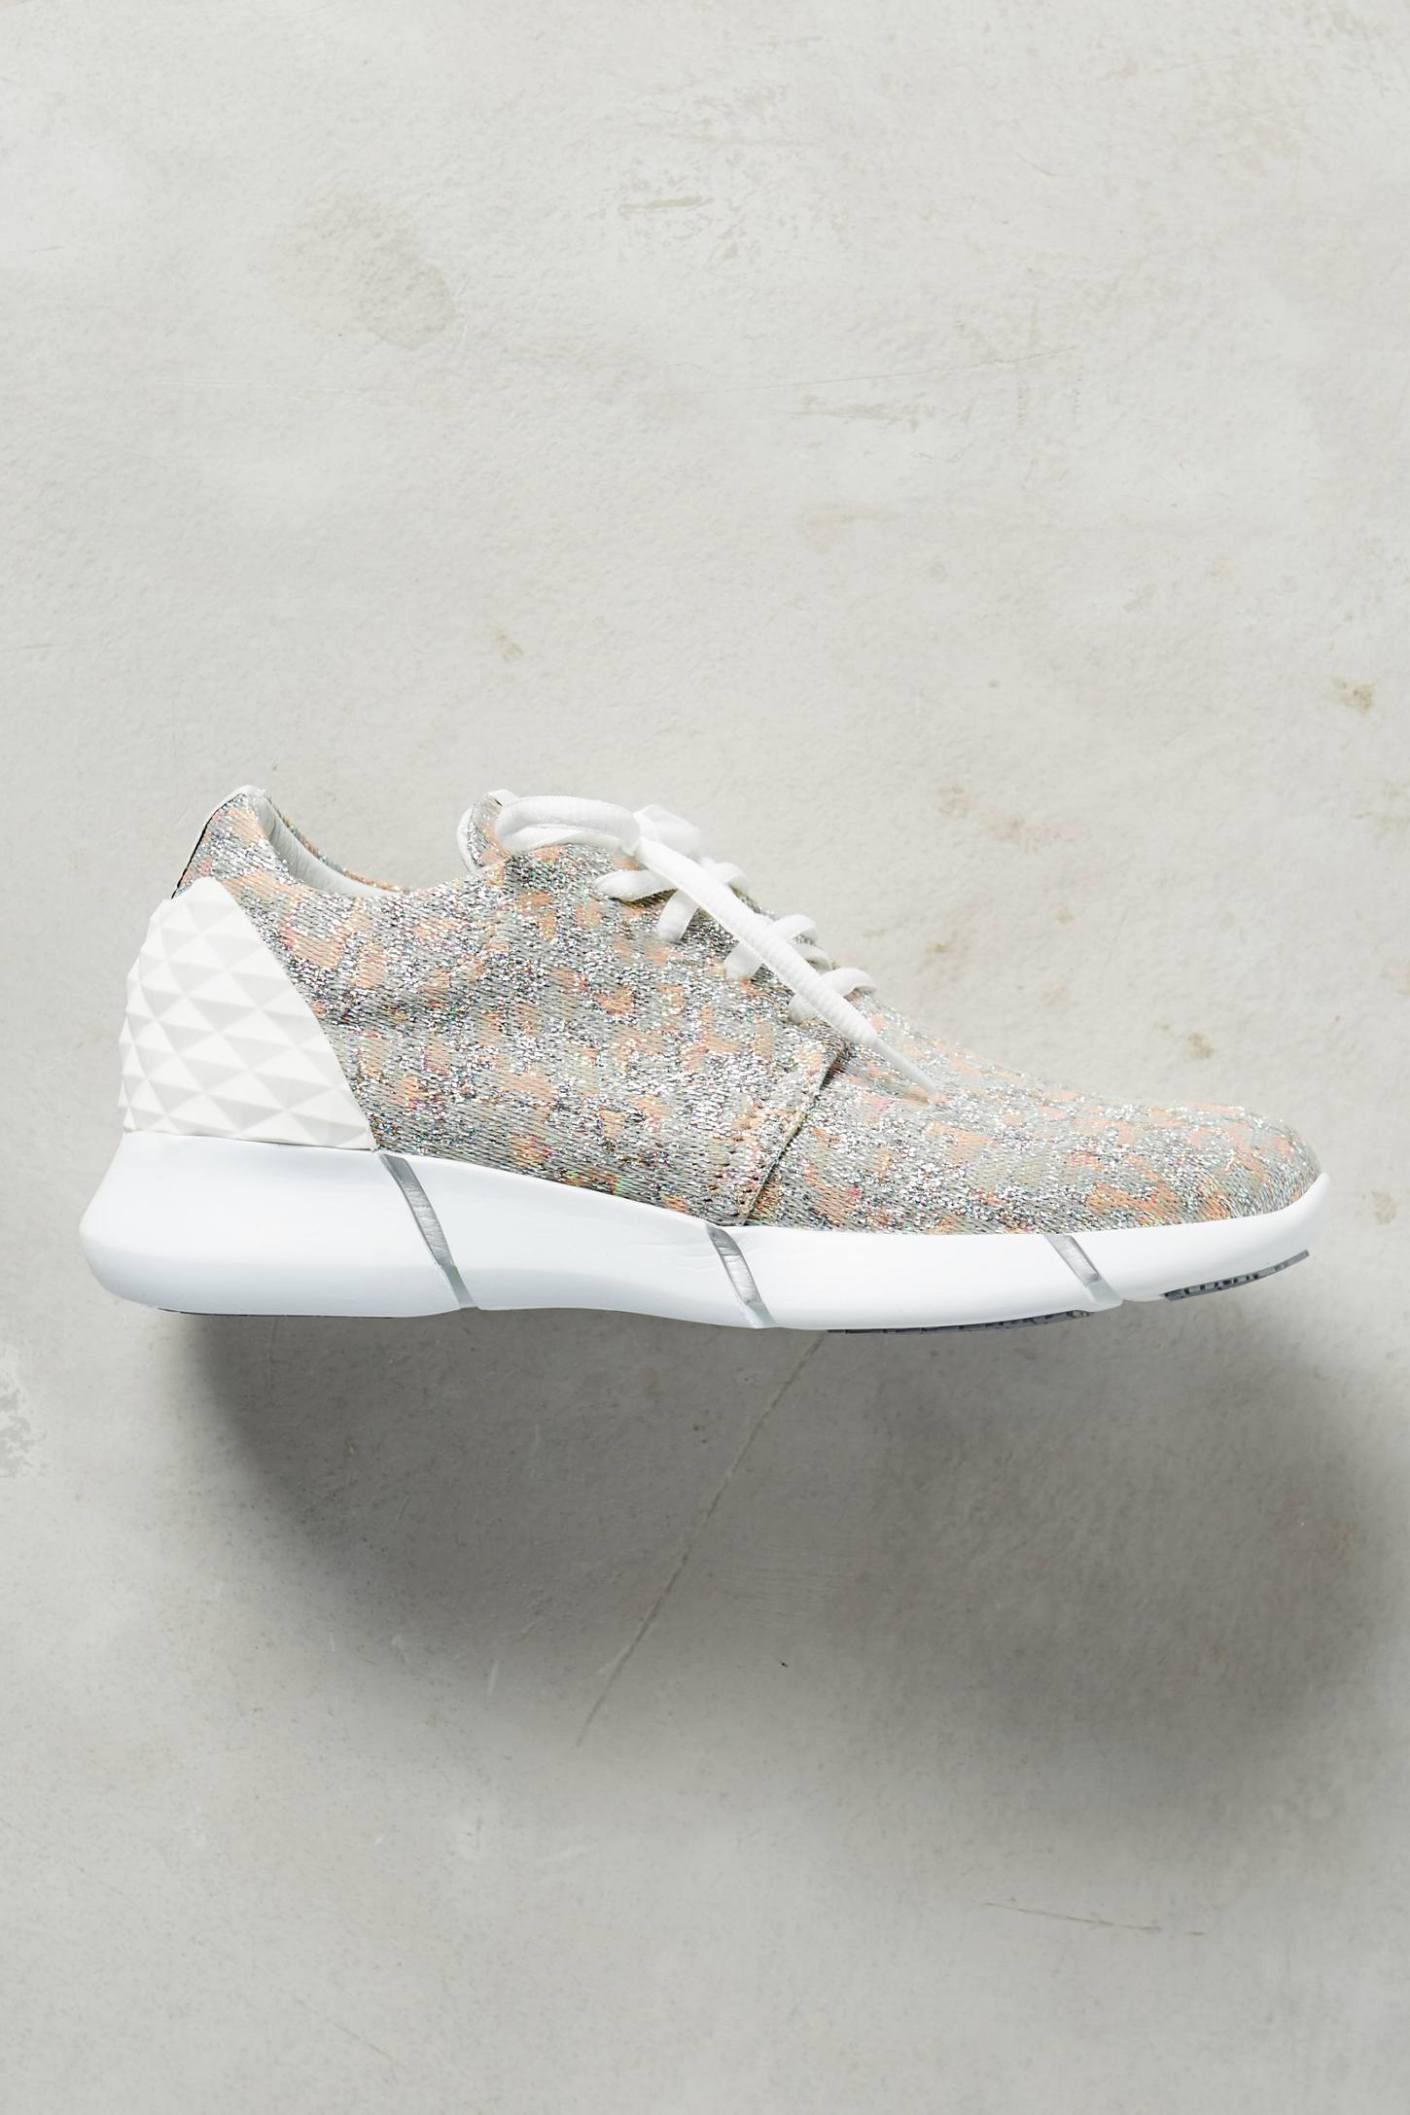 Cheap offers ECCO ST.1 | Women's vintage sneakers | ECCO